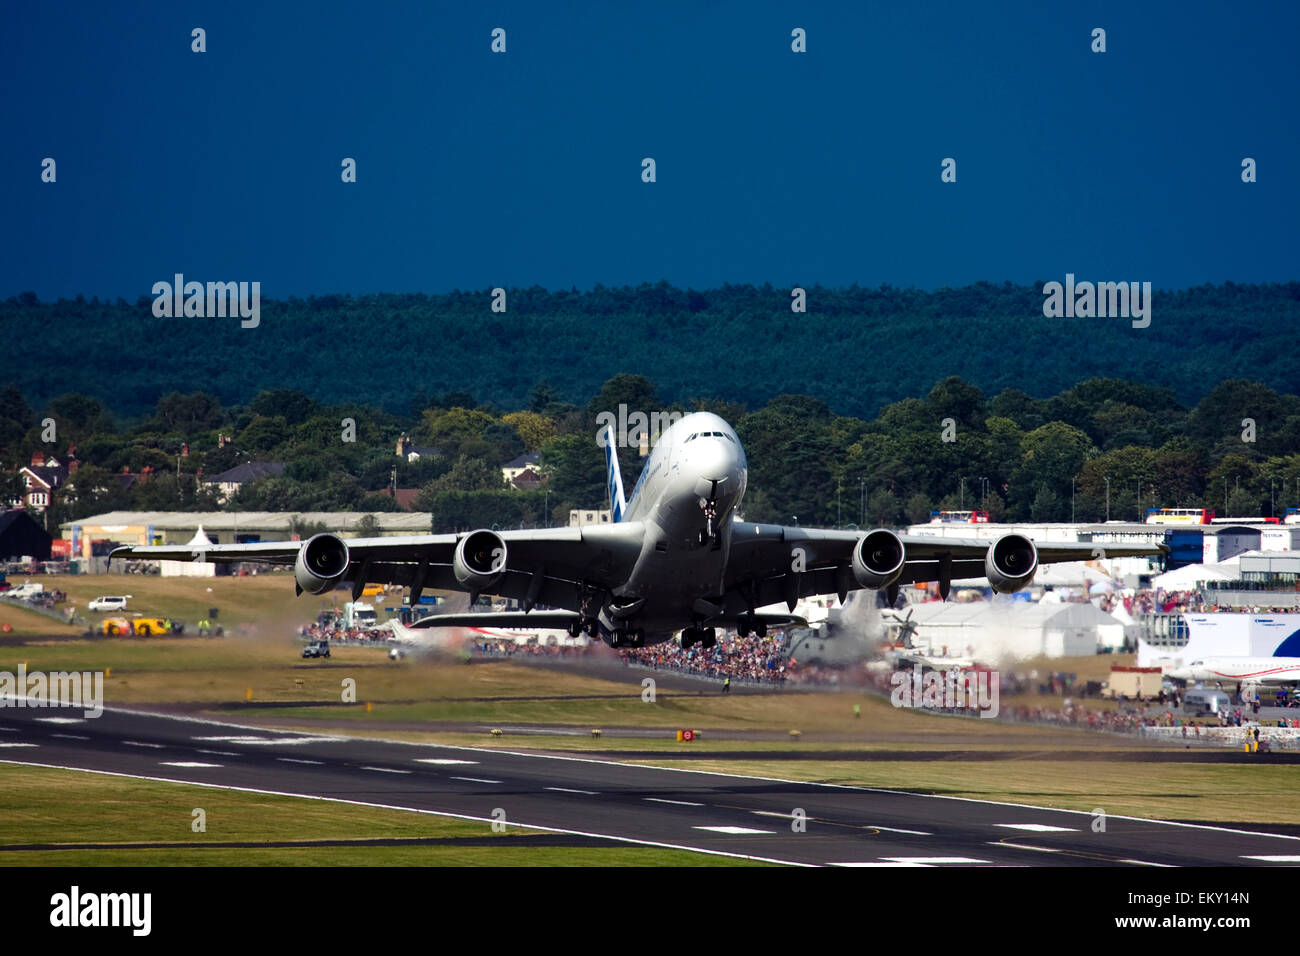 Airbus A380 taking off at Farnborough International Airshow 2015 - Stock Image